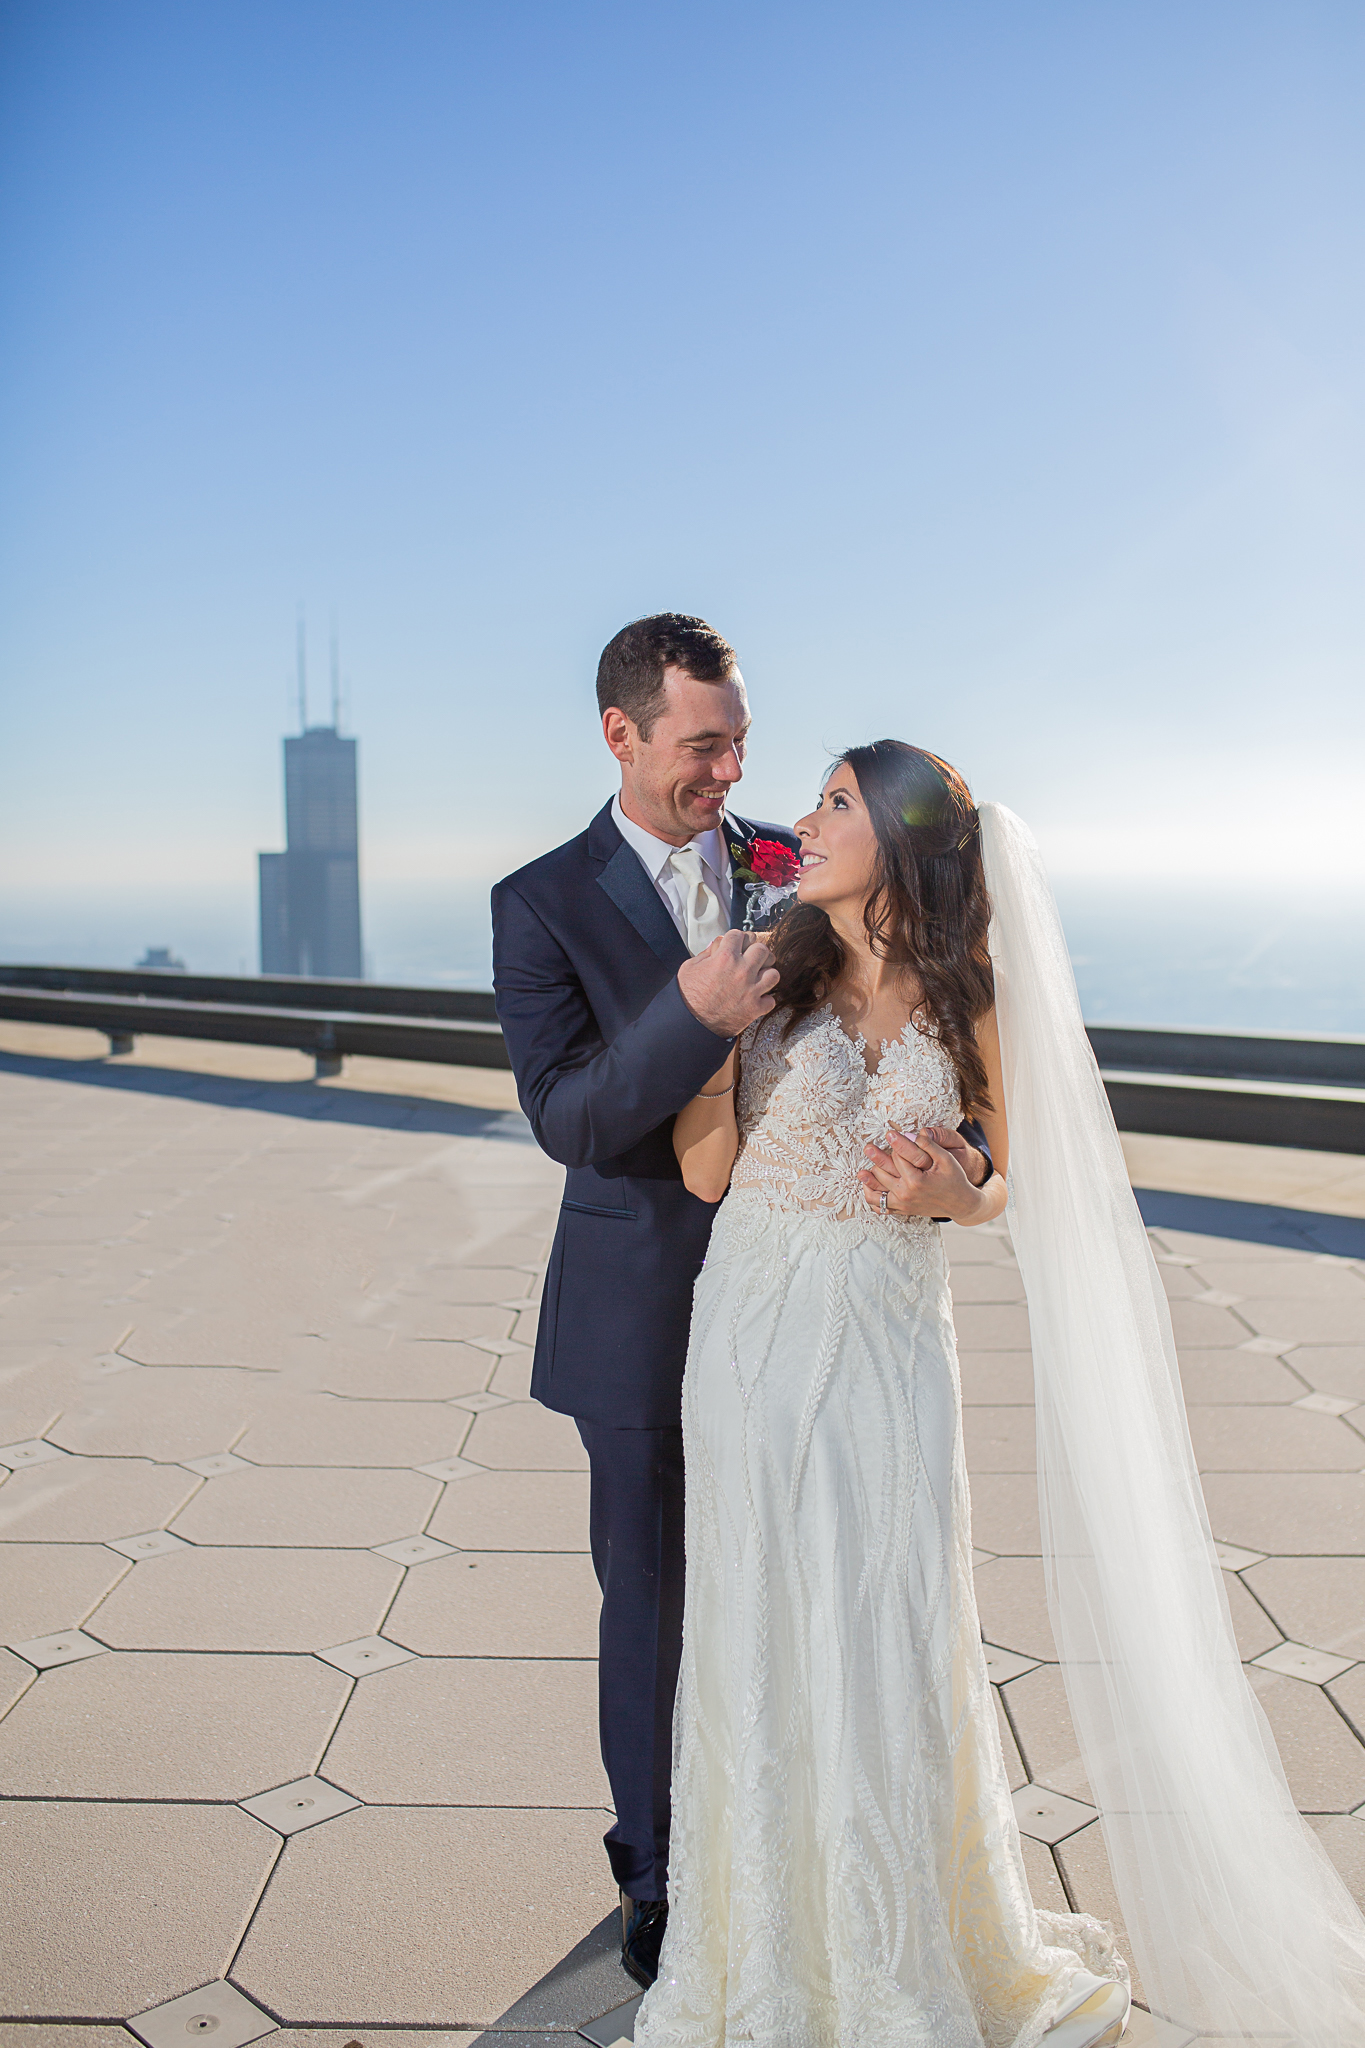 Bride and groom on rooftop downtown Chicago